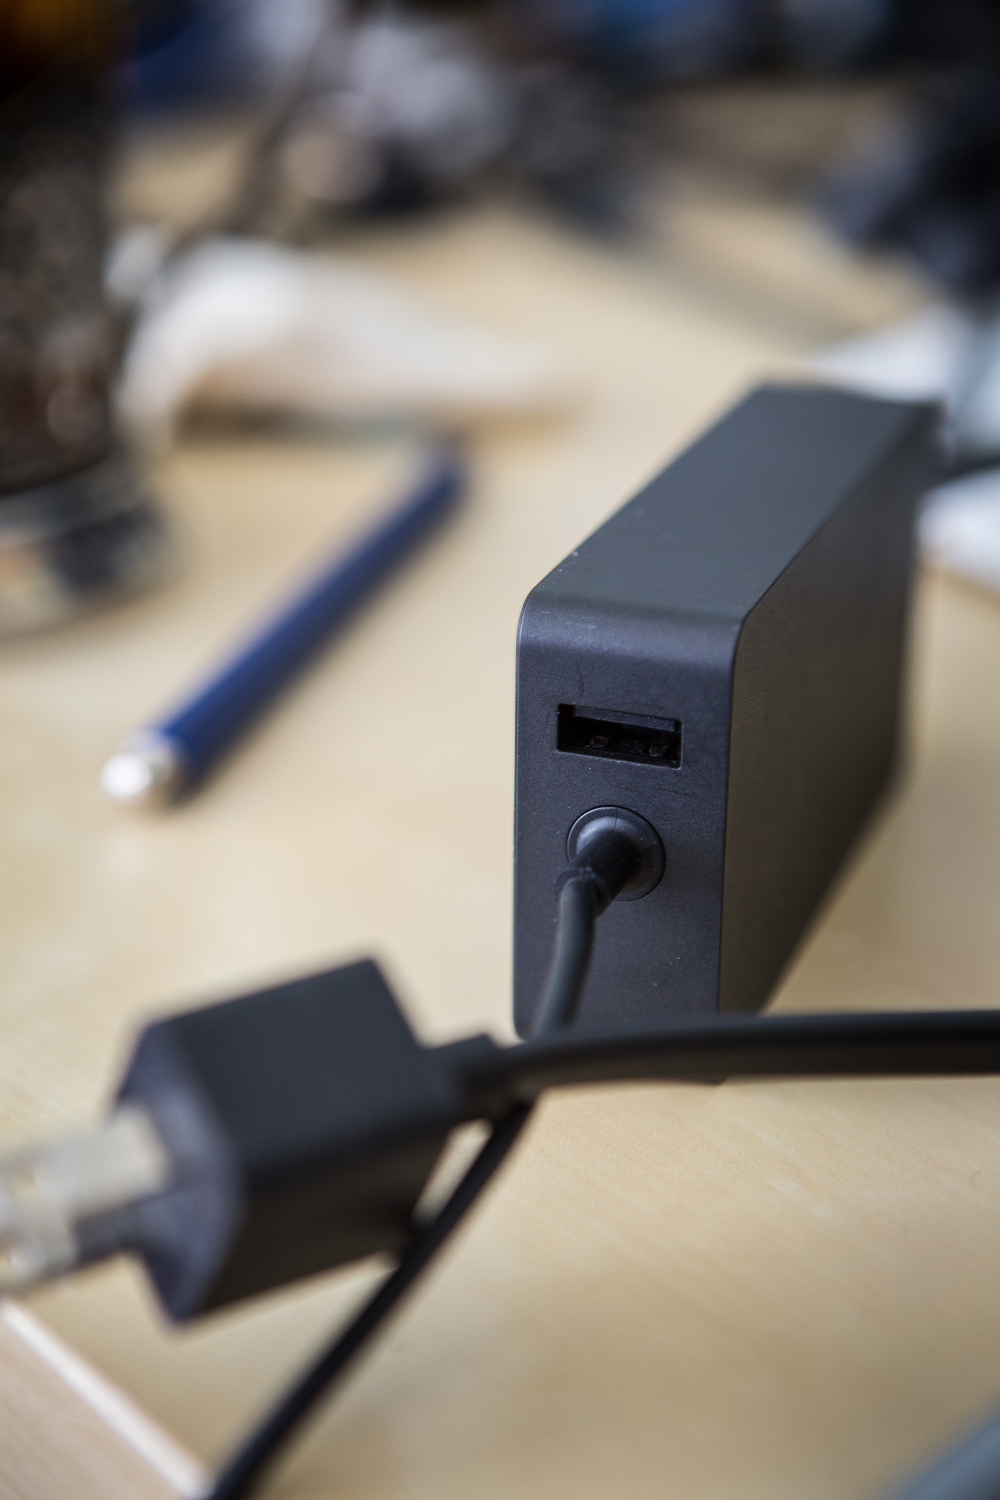 There is a USB port on the power cord to charge any device while powering the Surface.